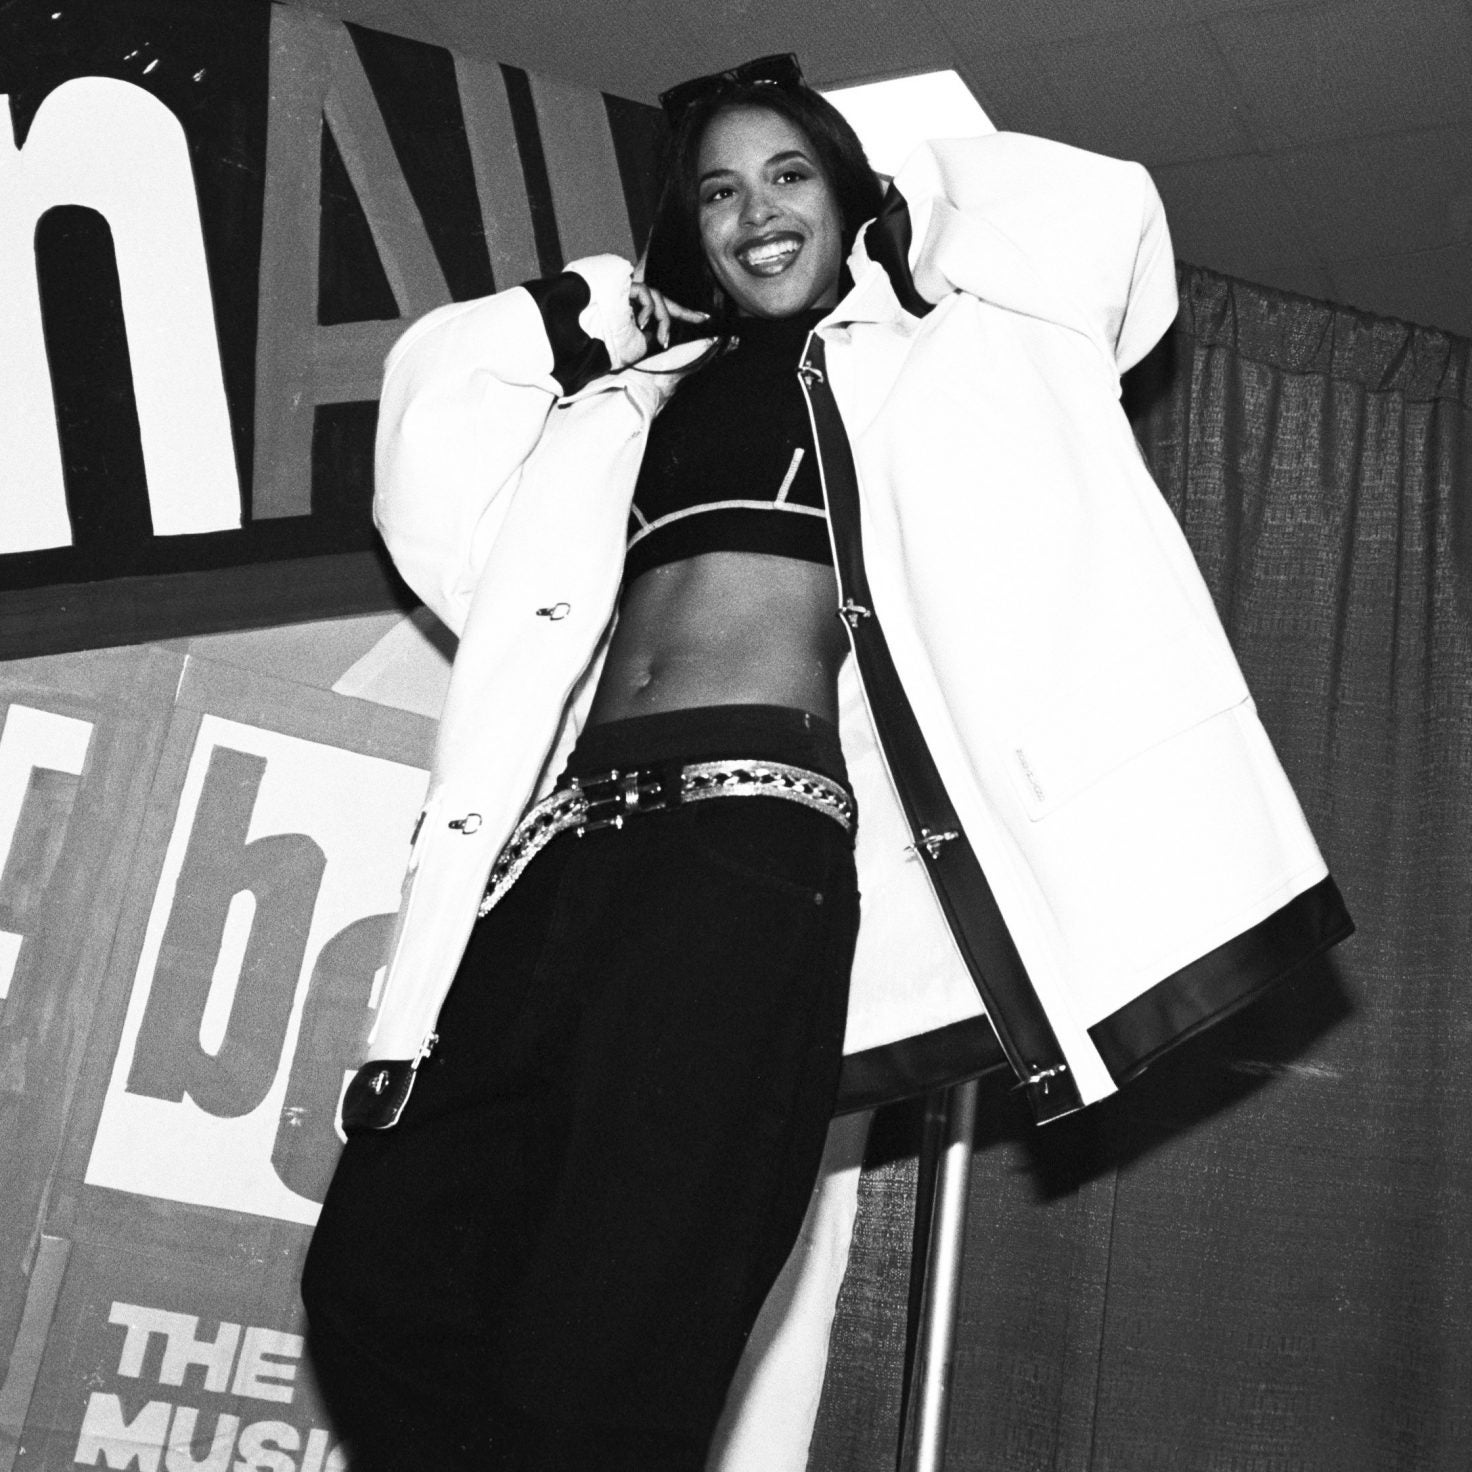 Aaliyah's Music Will Soon Become Available On Streaming Services